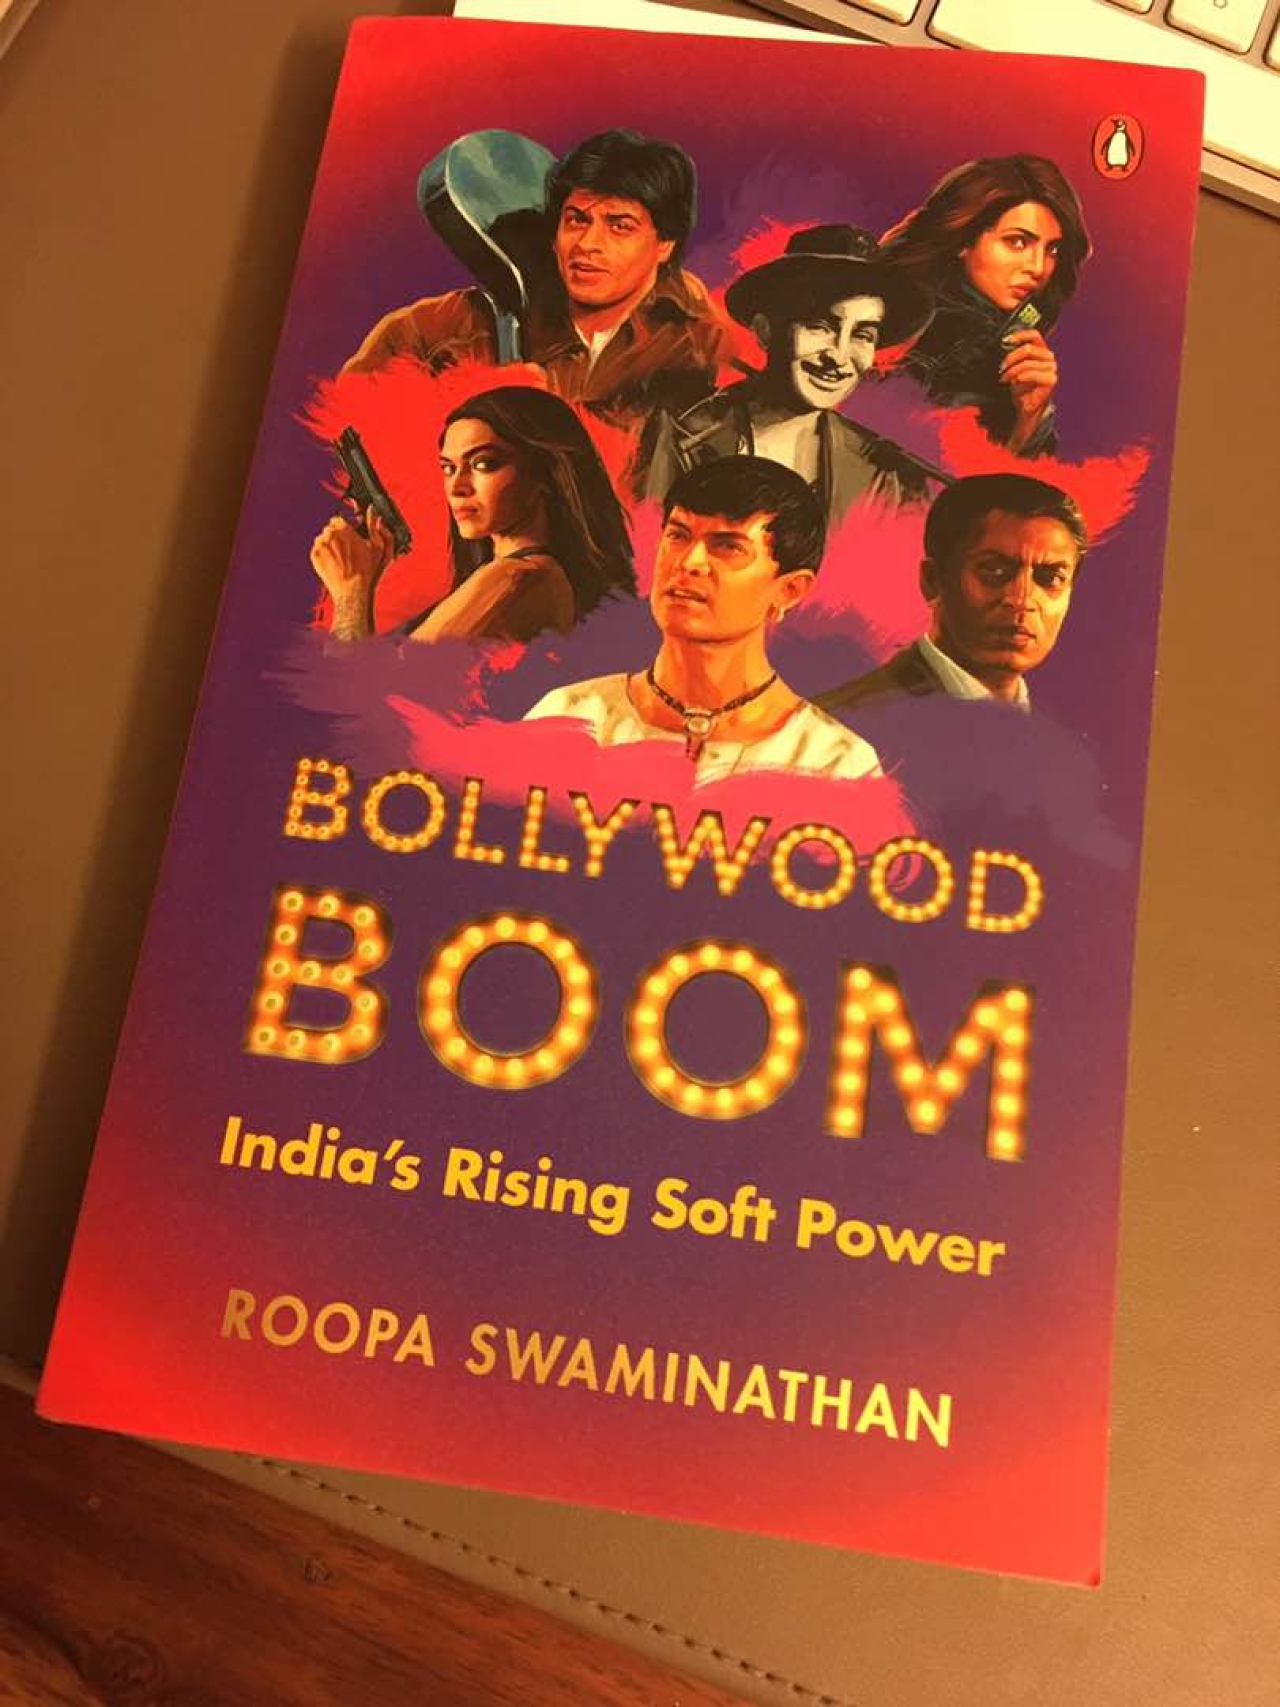 The book cover of 'Bollywood Boom: India's Rising Soft Power' by Roopa Swaminathan